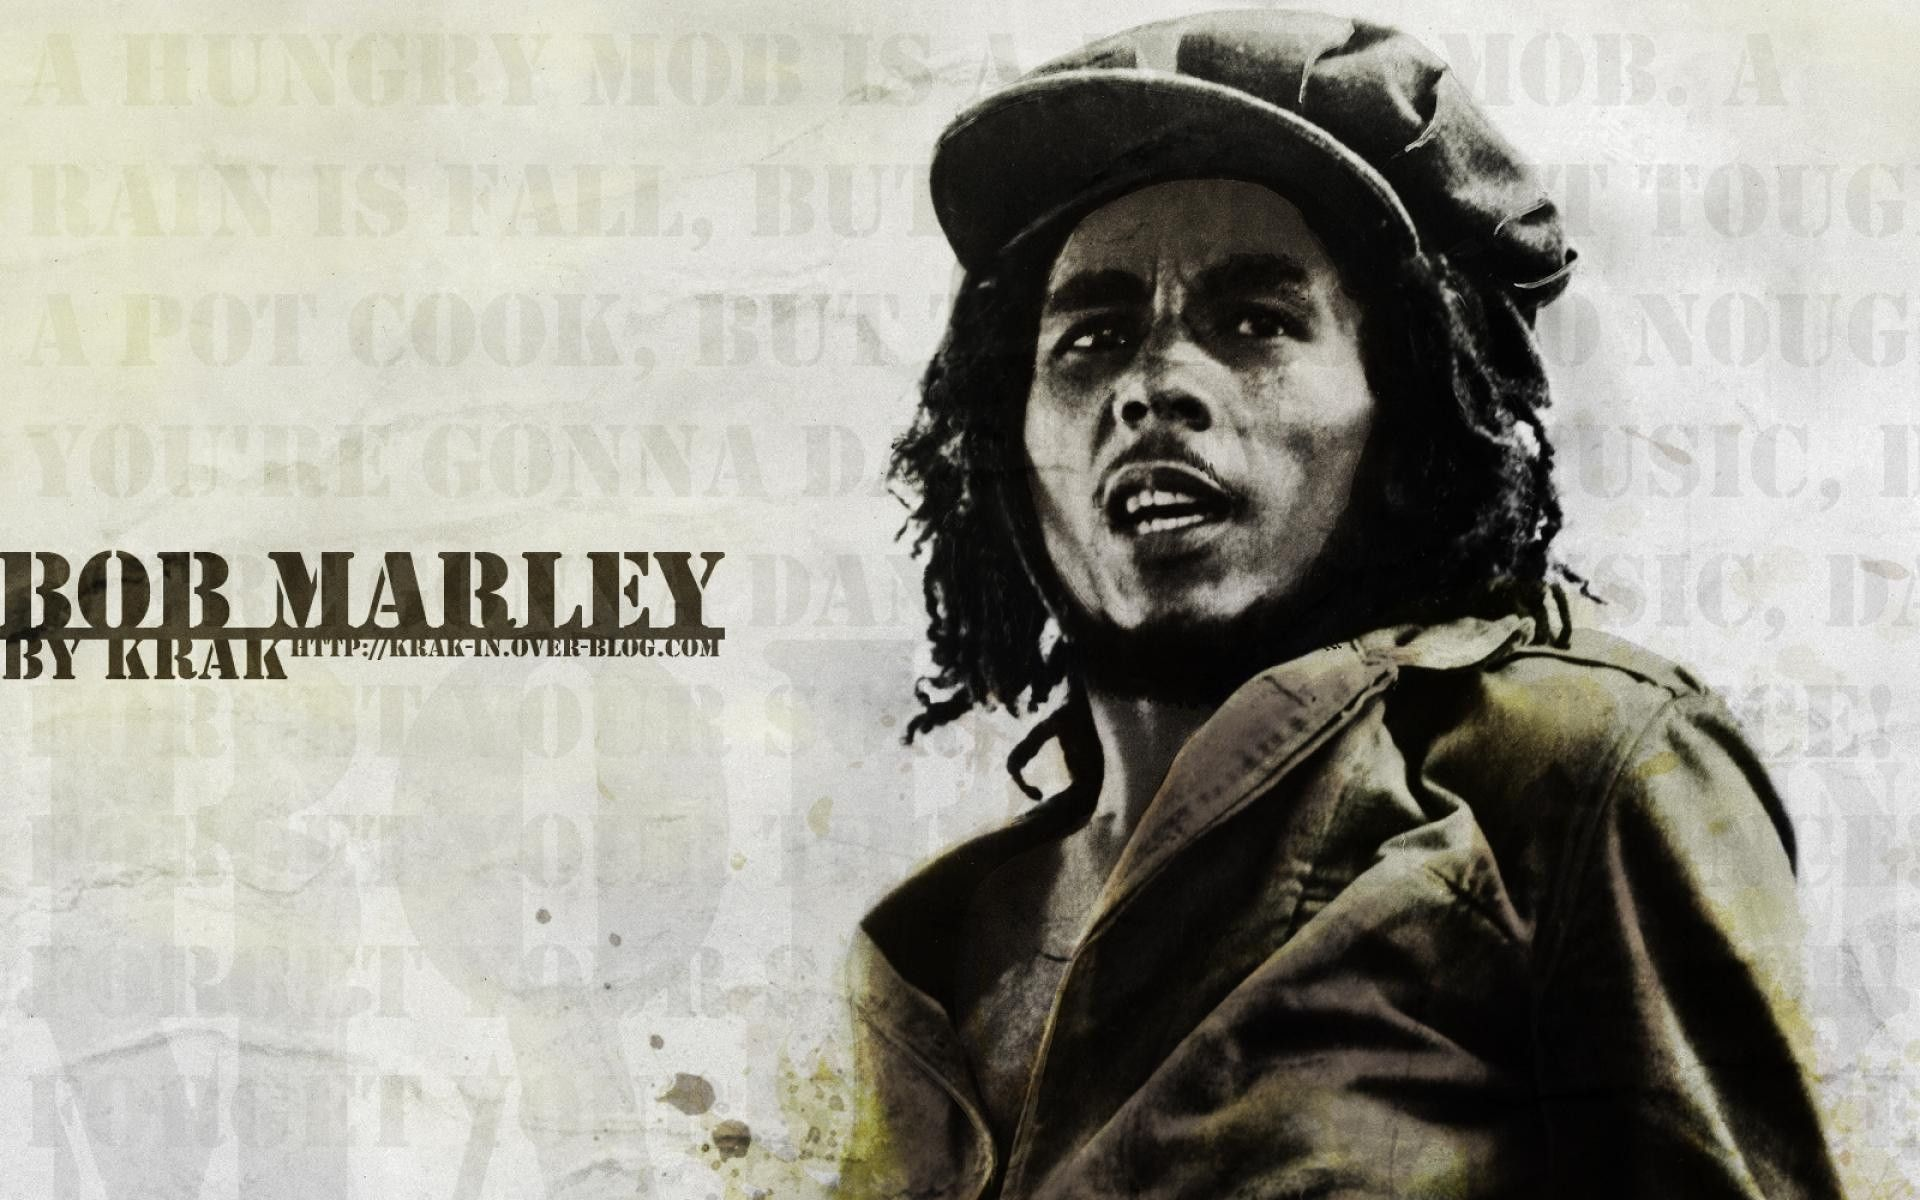 image for bob marley dreadlock rasta wallpaper download ideas